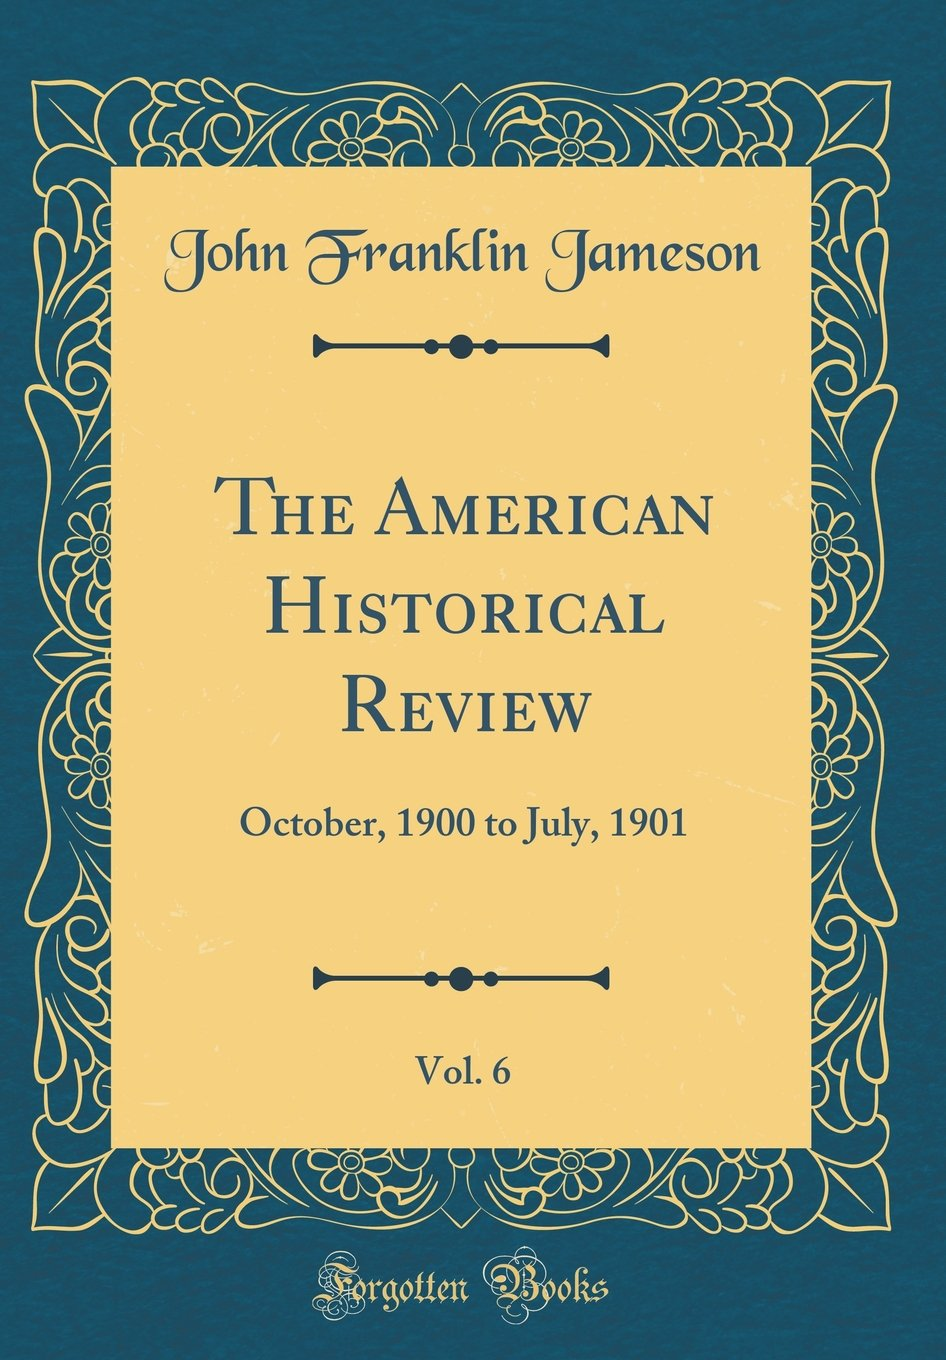 Download The American Historical Review, Vol. 6: October, 1900 to July, 1901 (Classic Reprint) PDF